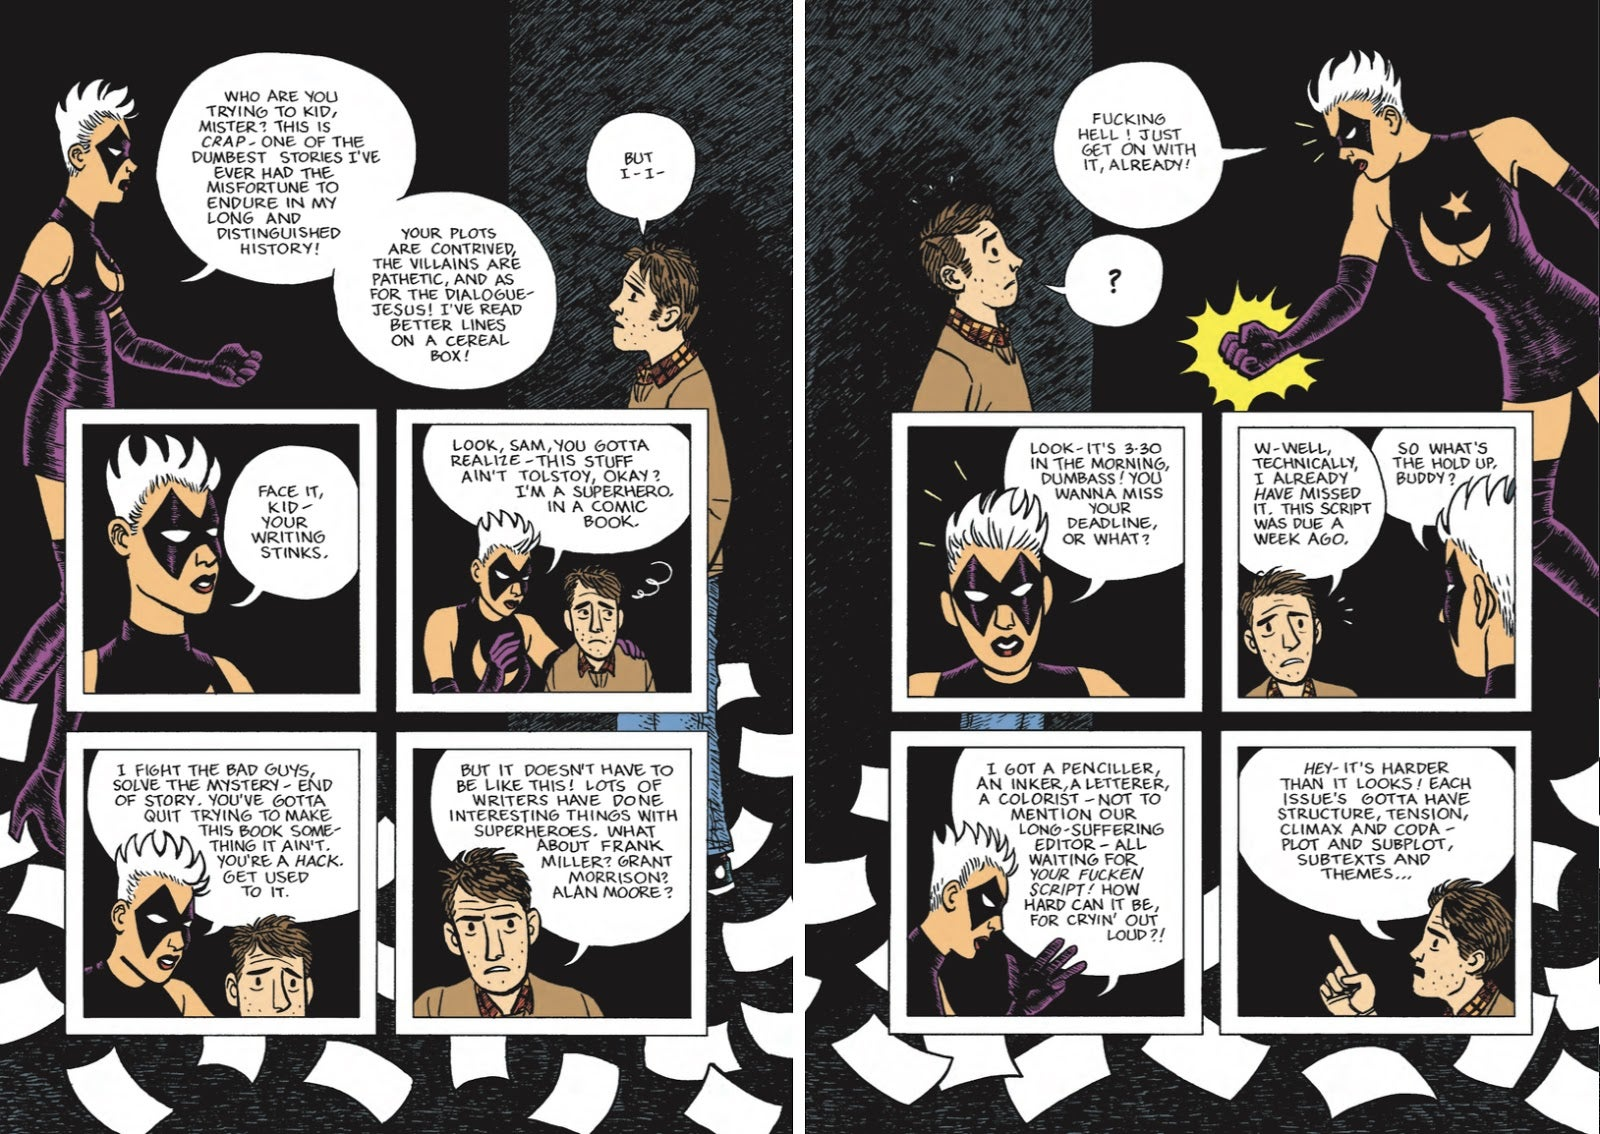 A Graphic Novel That Shows The Creepy And Awesome Sides Of Nerd Culture